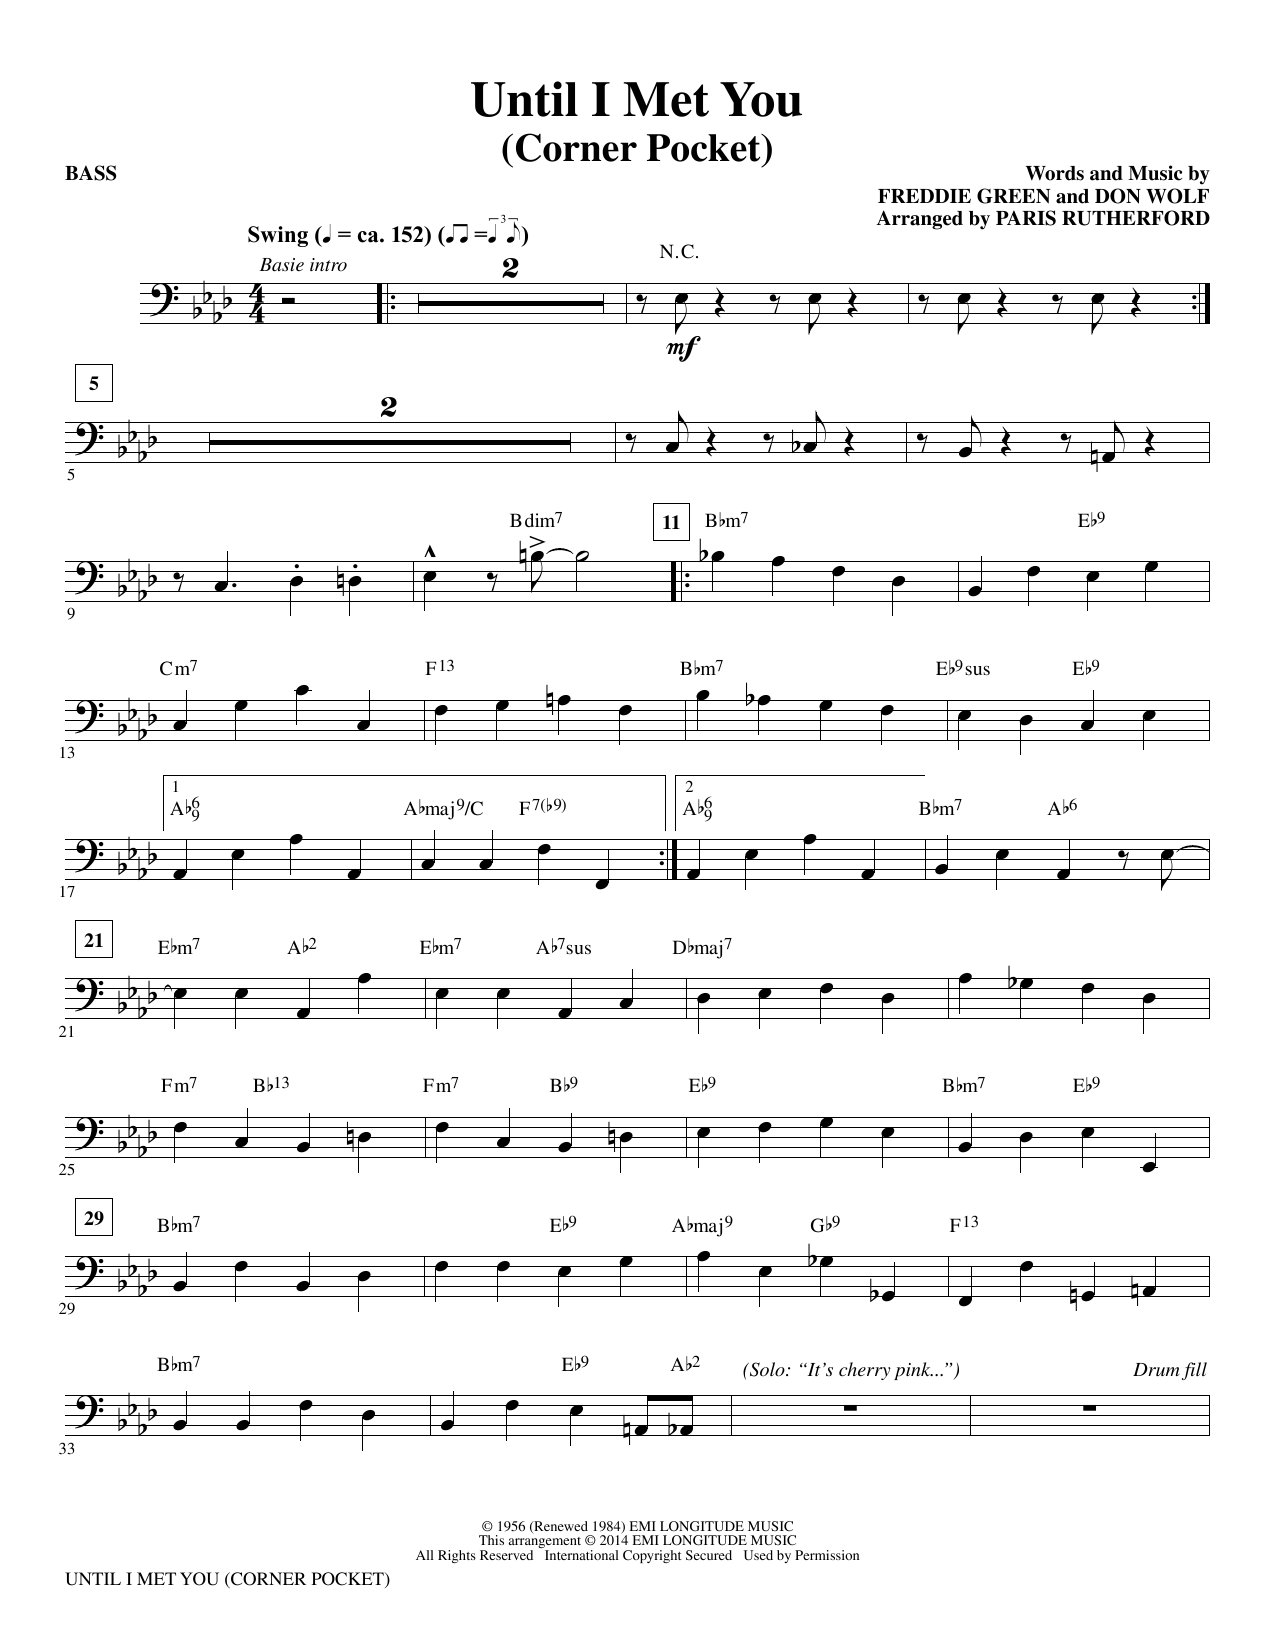 Until I Met You (Corner Pocket) - Bass Sheet Music